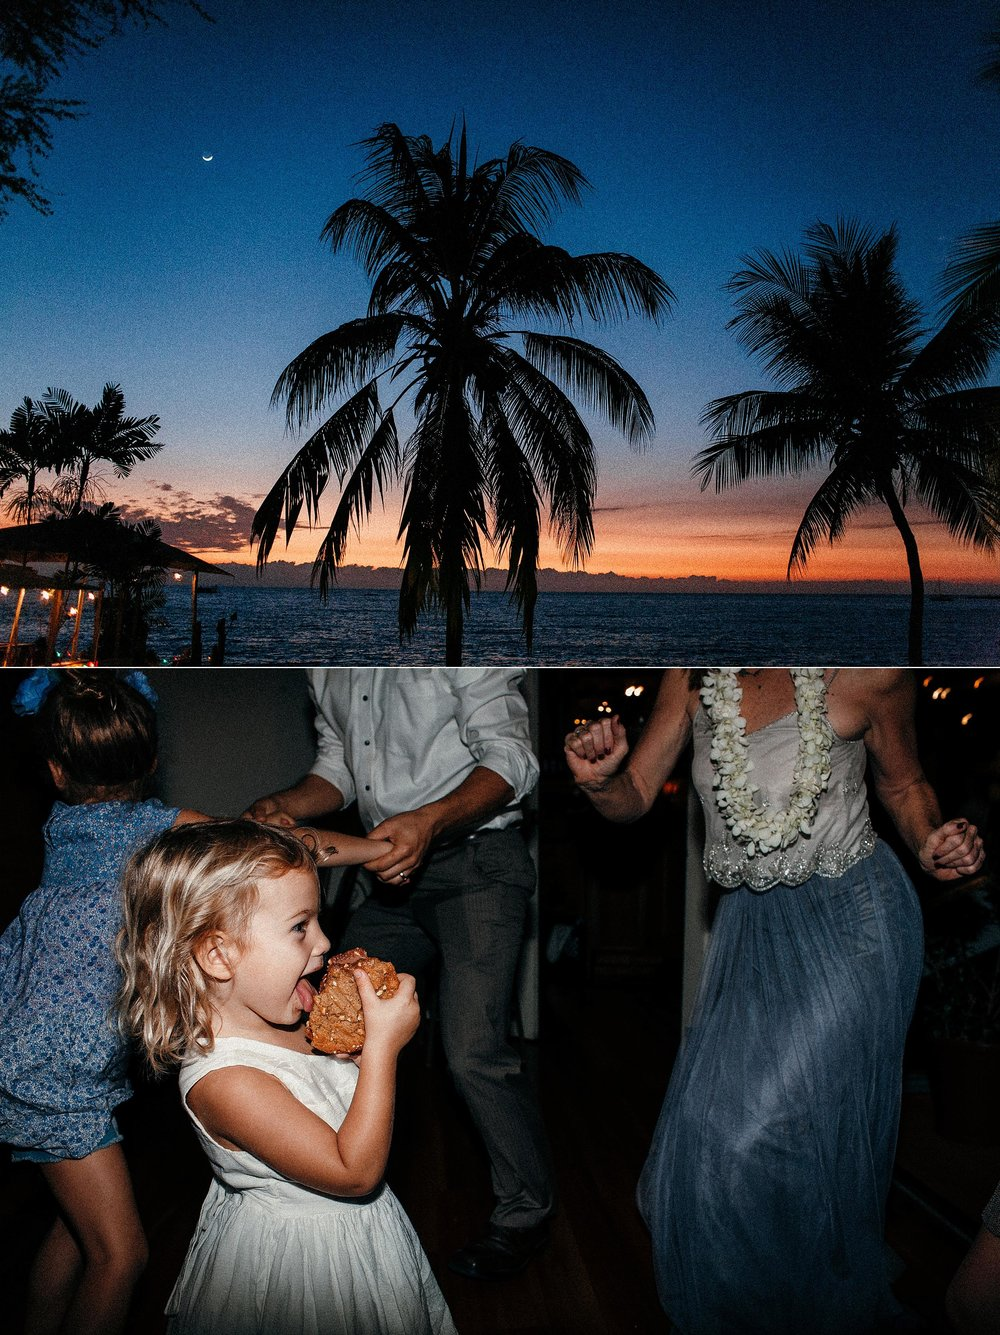 Kona-Big-Island-Hawaii-New-Years-Eve-Wedding-with-Ceremony-at-Living-Stones-Church-and-Reception-at-Daylight-Mind-Coffee_0026.jpg